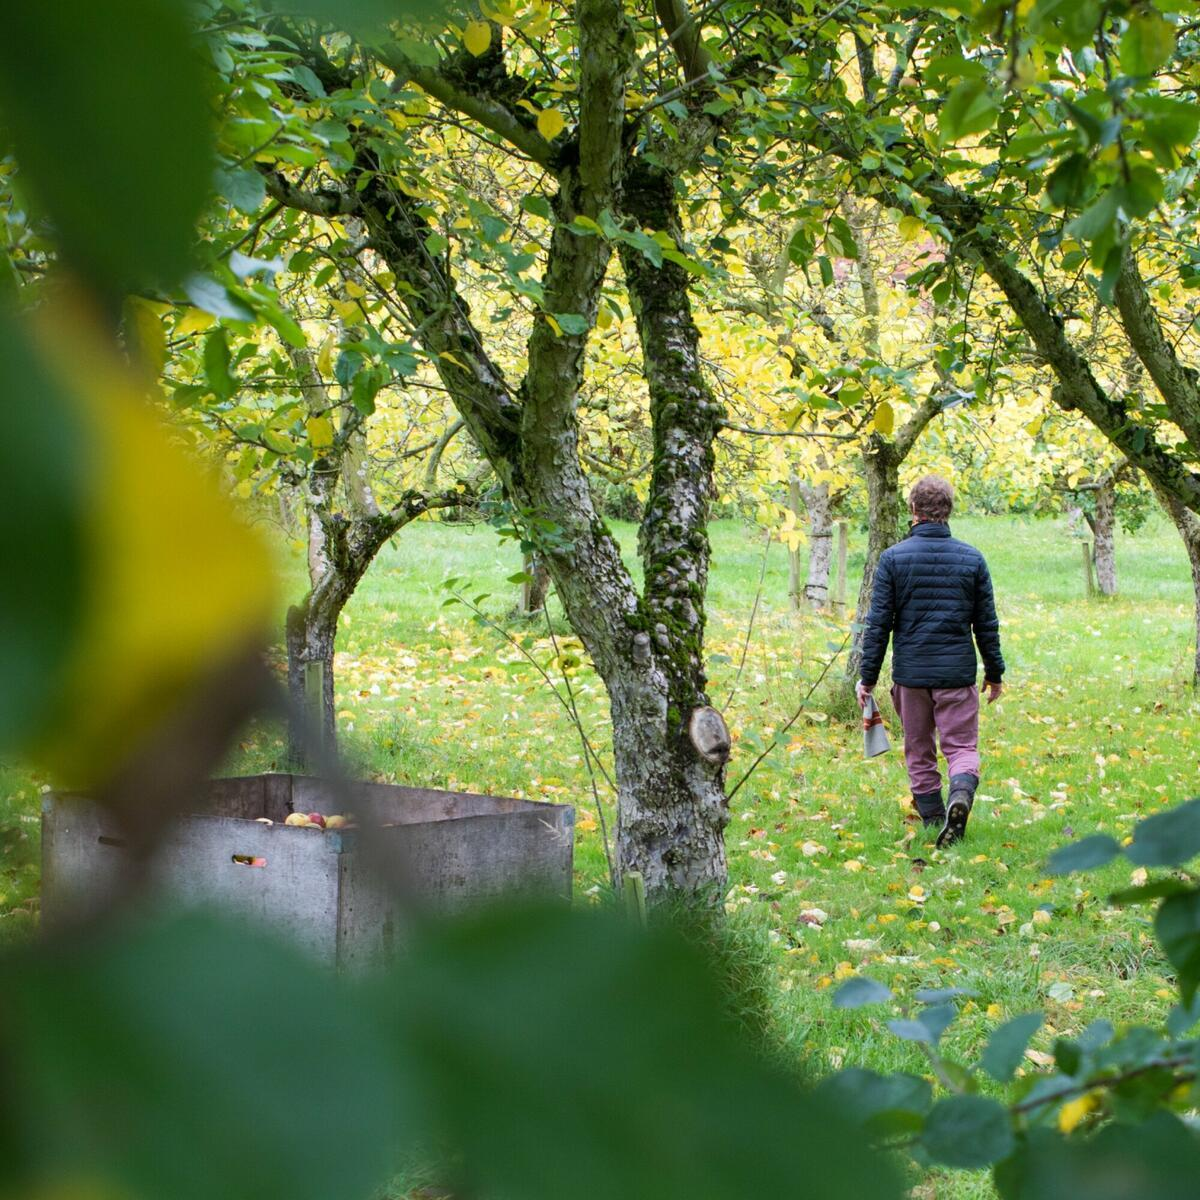 Walking through the Orchard